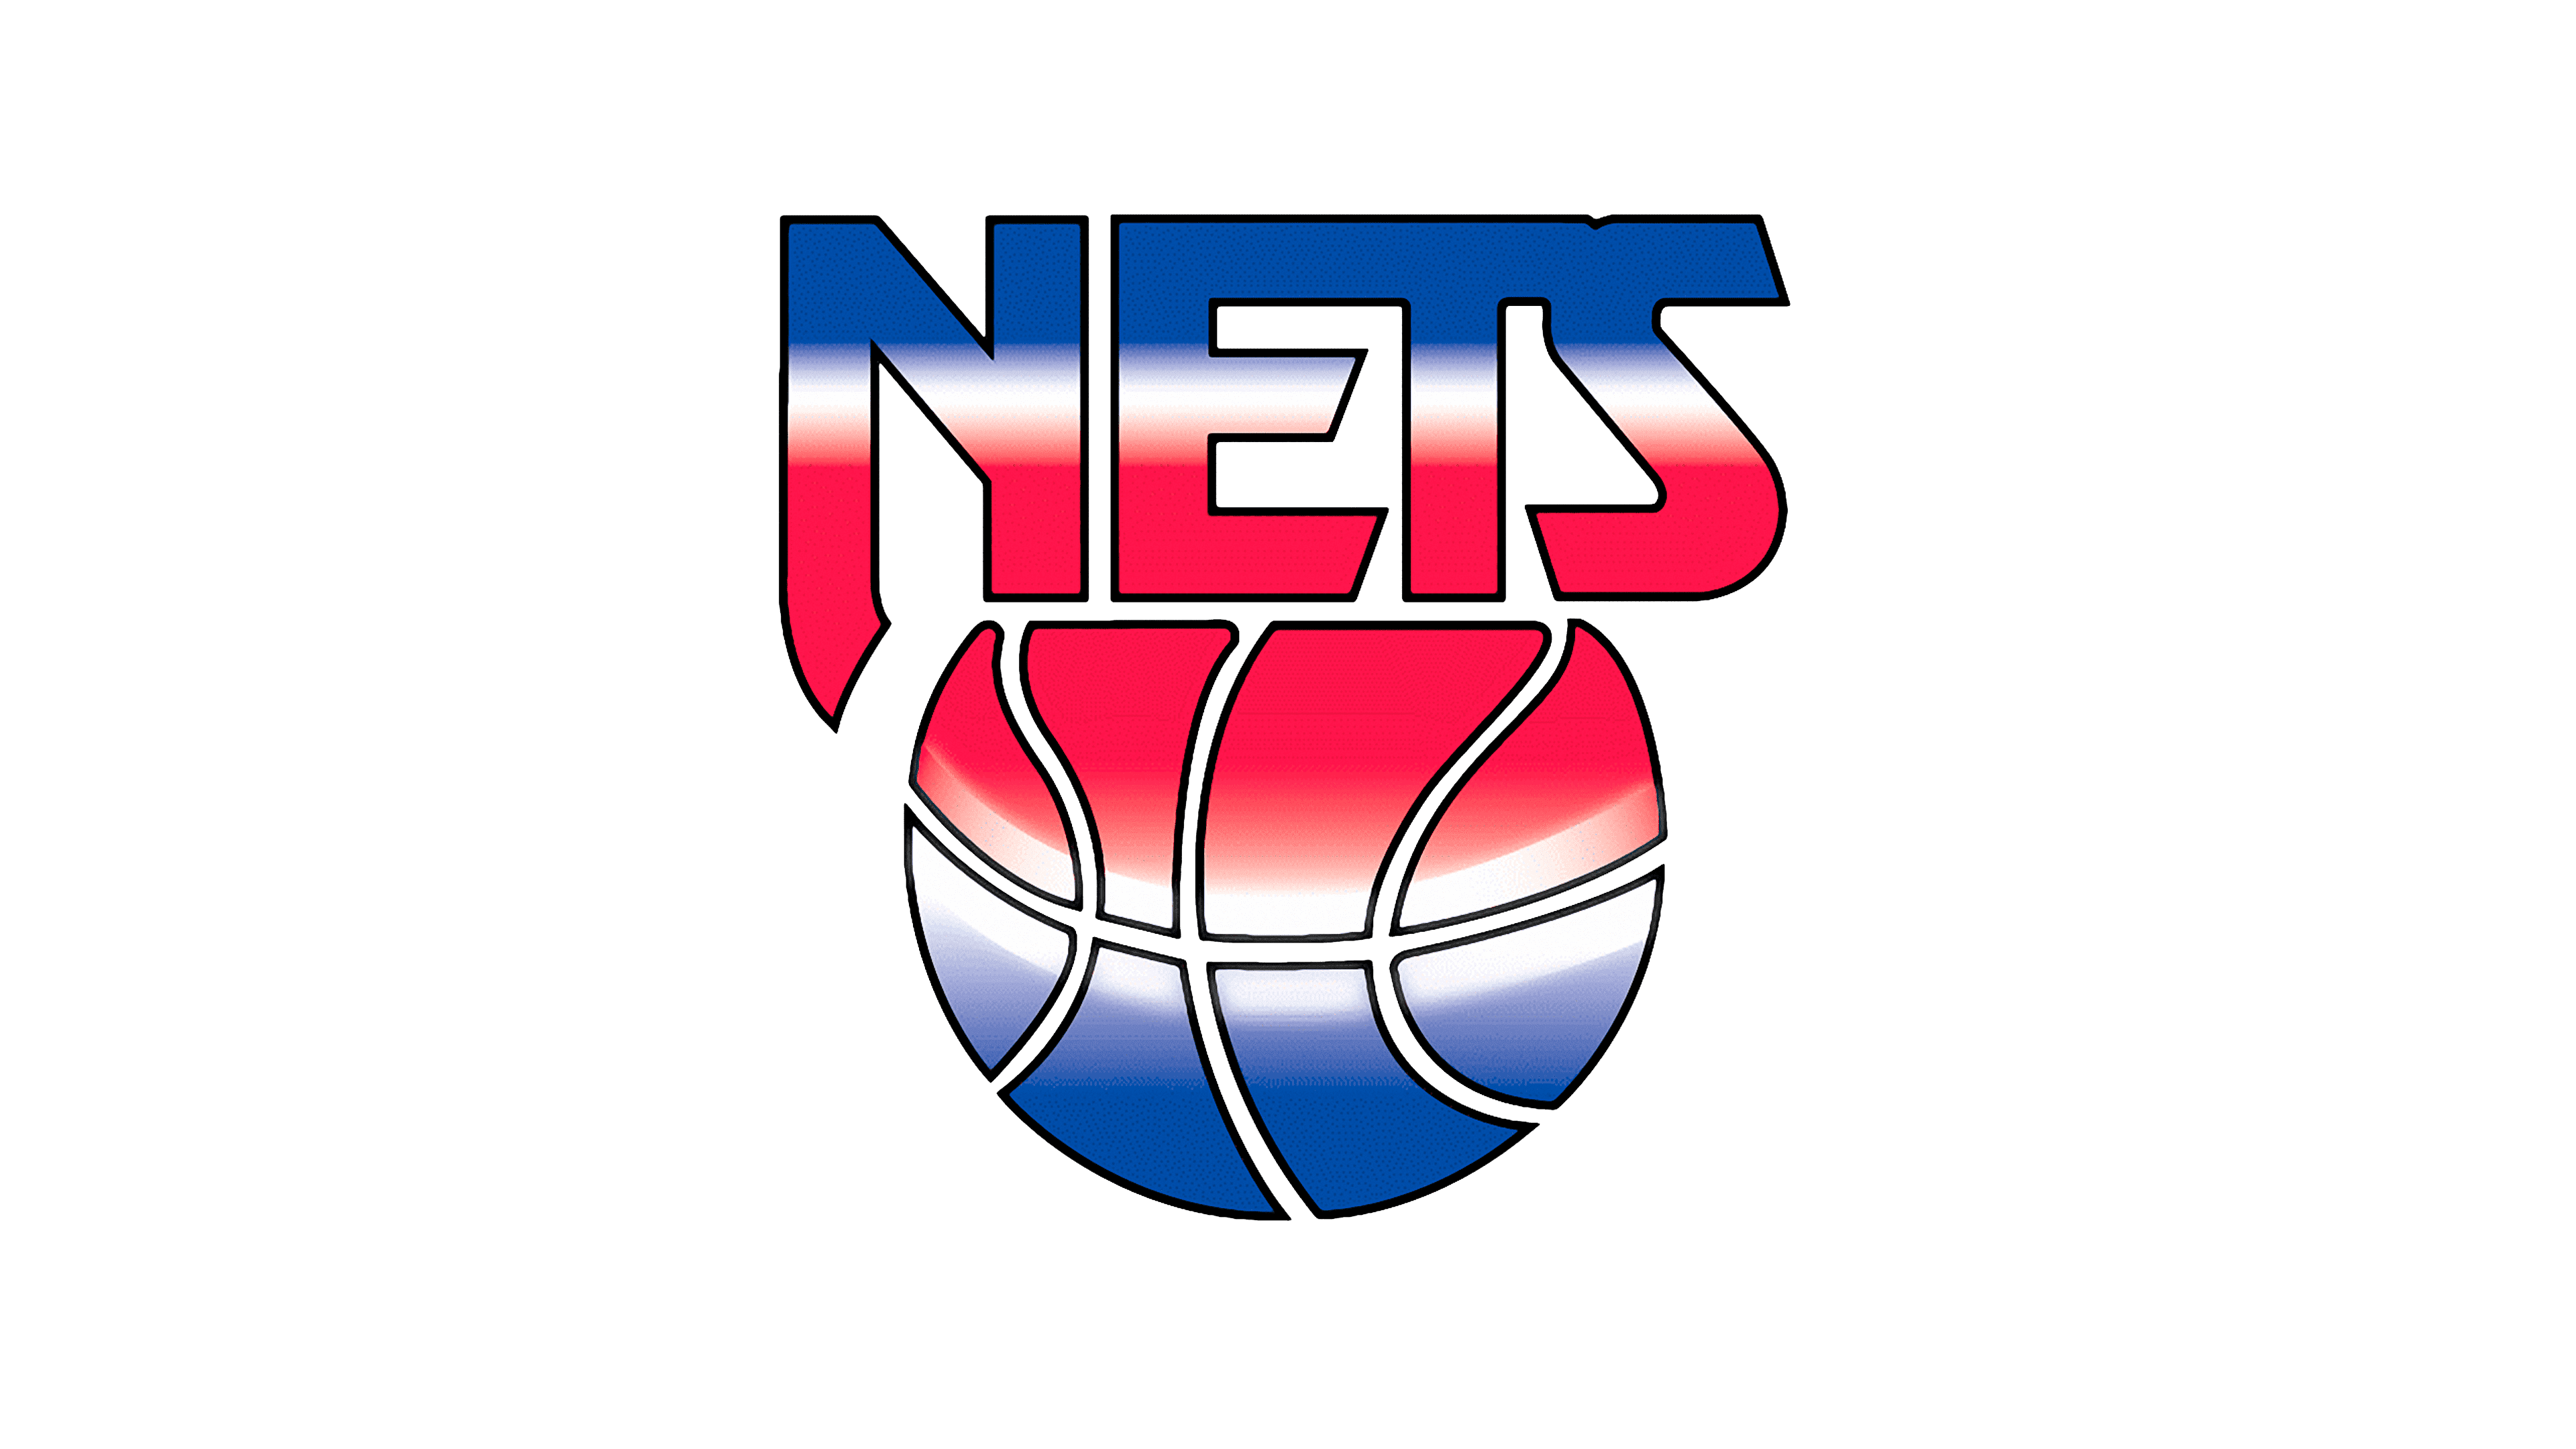 Brooklyn Nets Logo The Most Famous Brands And Company Logos In The World